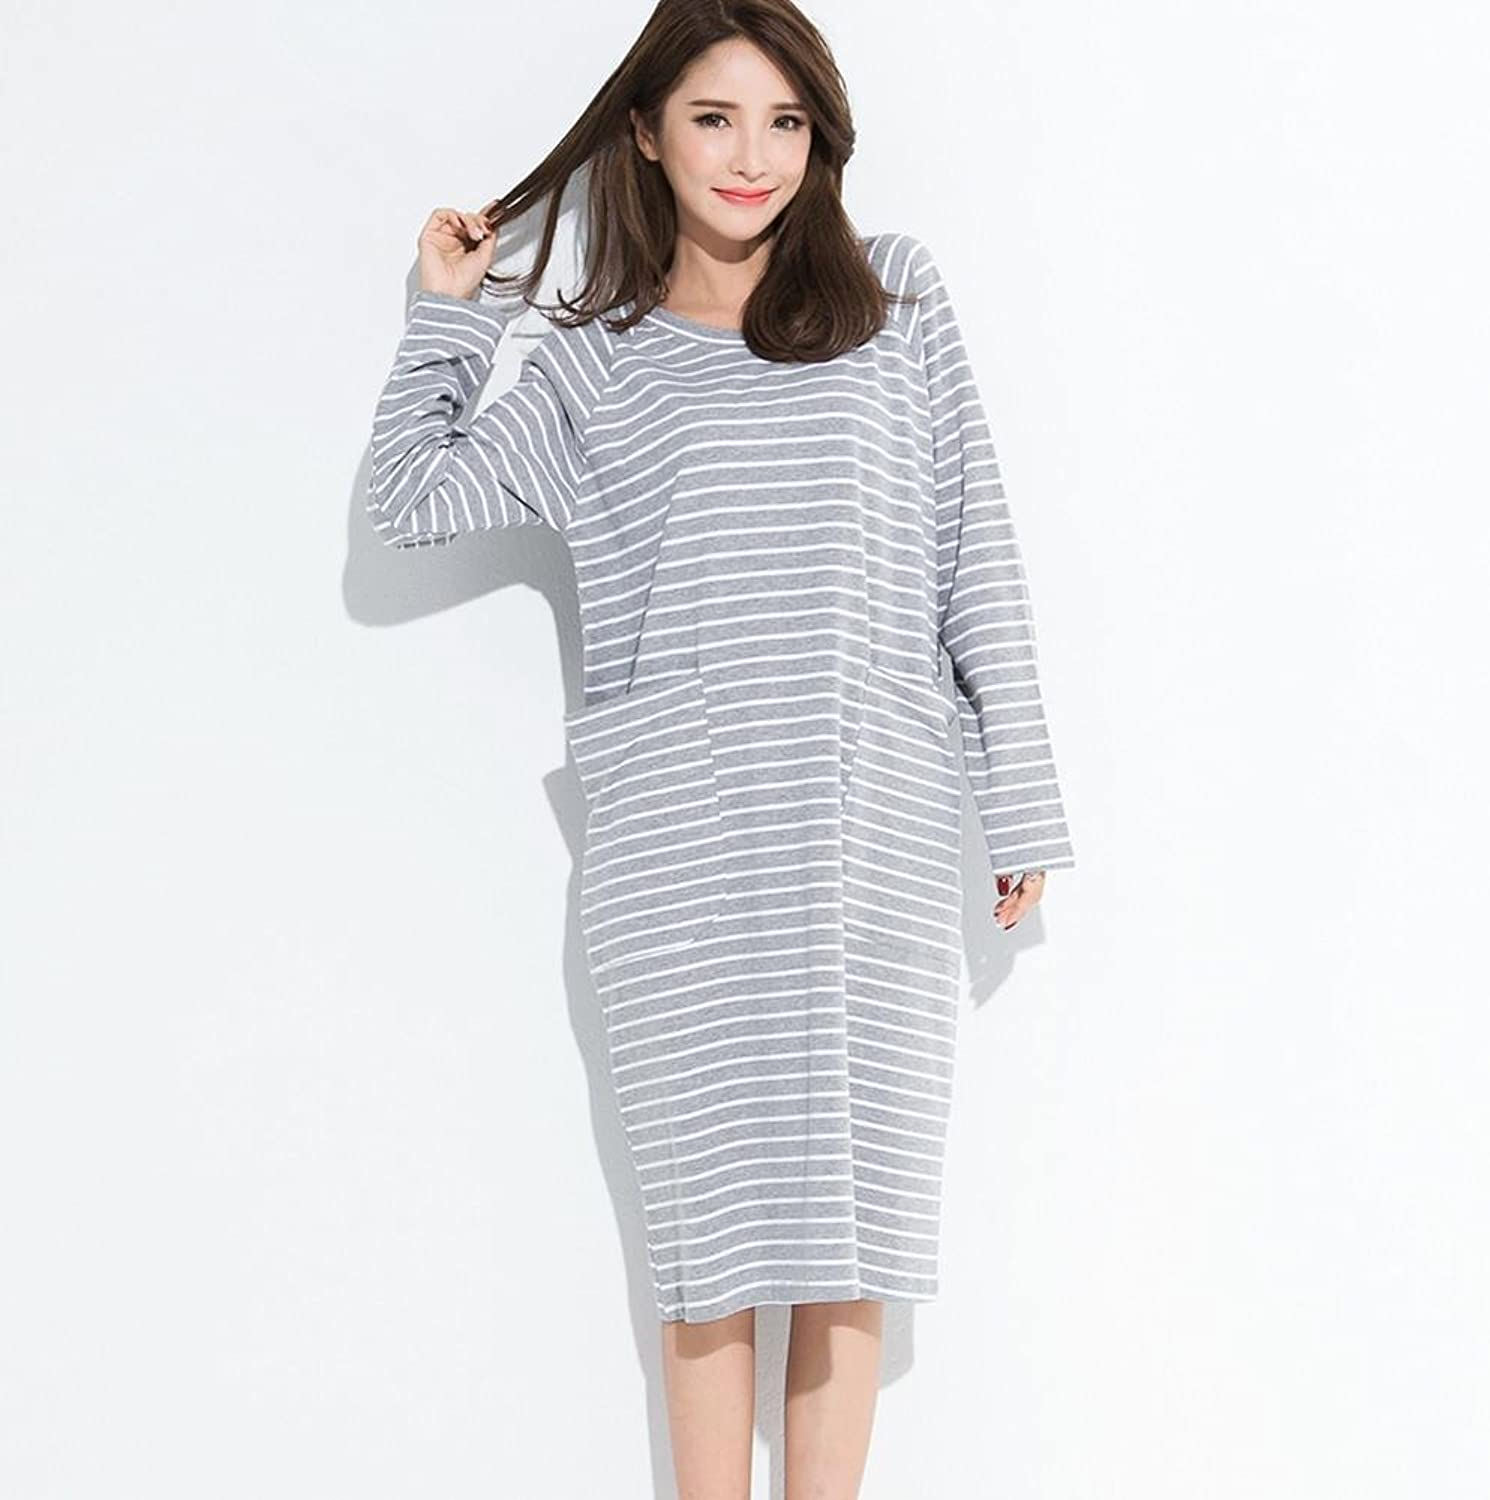 DMMSS Ladies Spring and Autumn Sleep Dress LongSleeved Cotton Home Clothing Stripes in The Long Section of Large Size Loose Pajamas Can Be Worn Outside